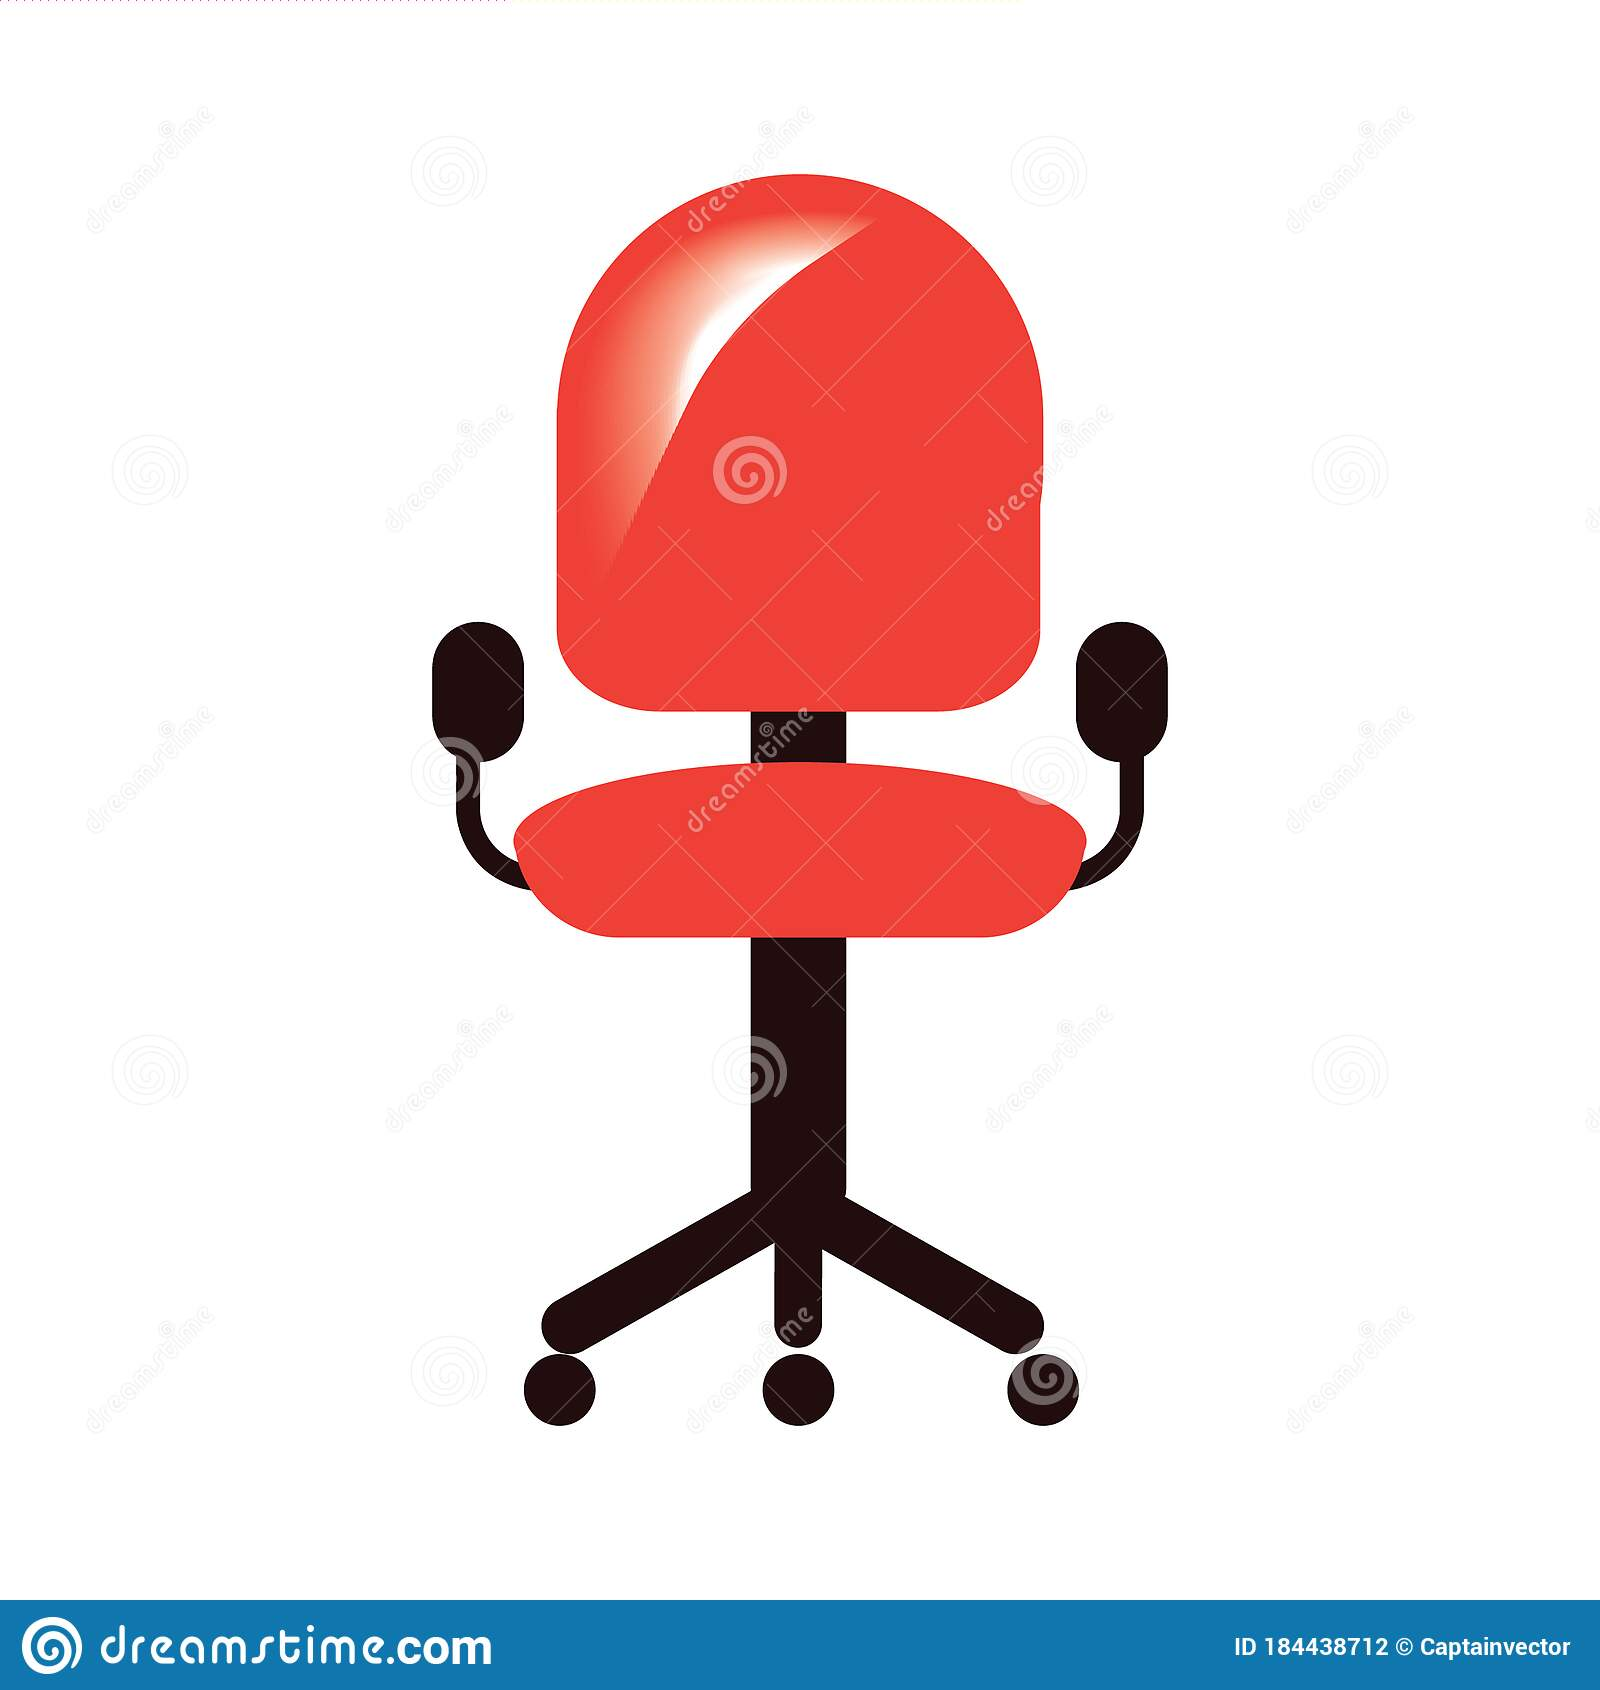 Office Chair Vector Illustration Decorative Background Design Stock Illustration Illustration Of Corporates Chairs 184438712